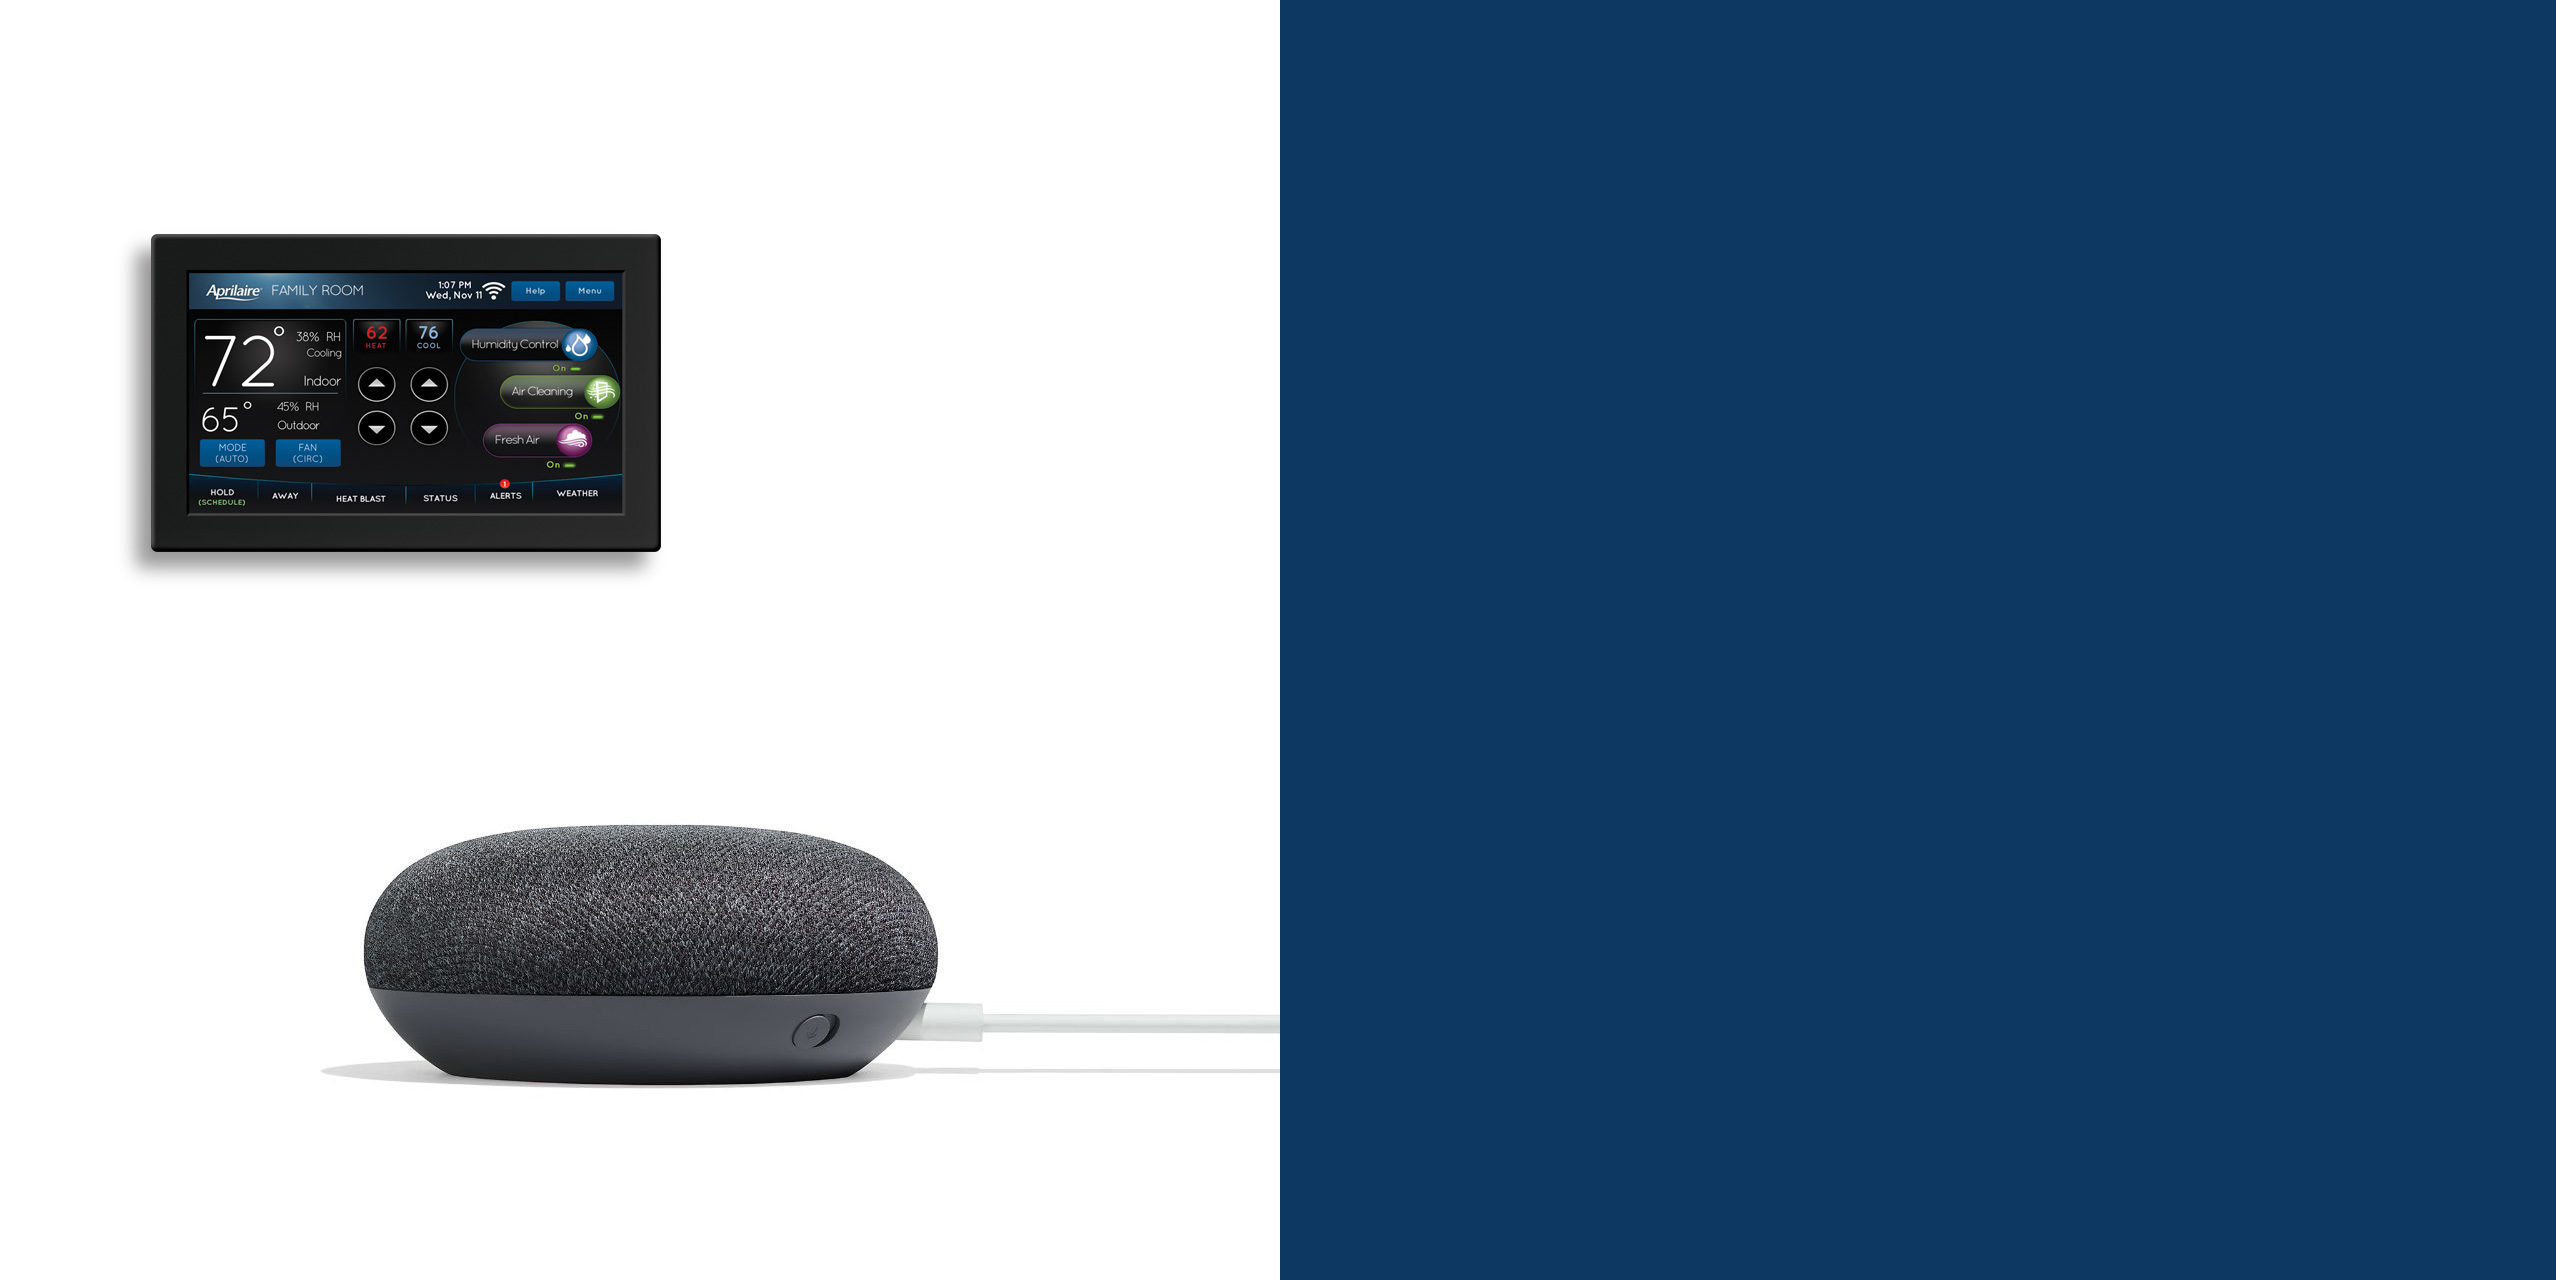 Google Home Mini Charcoal Side View Cropped for Banner